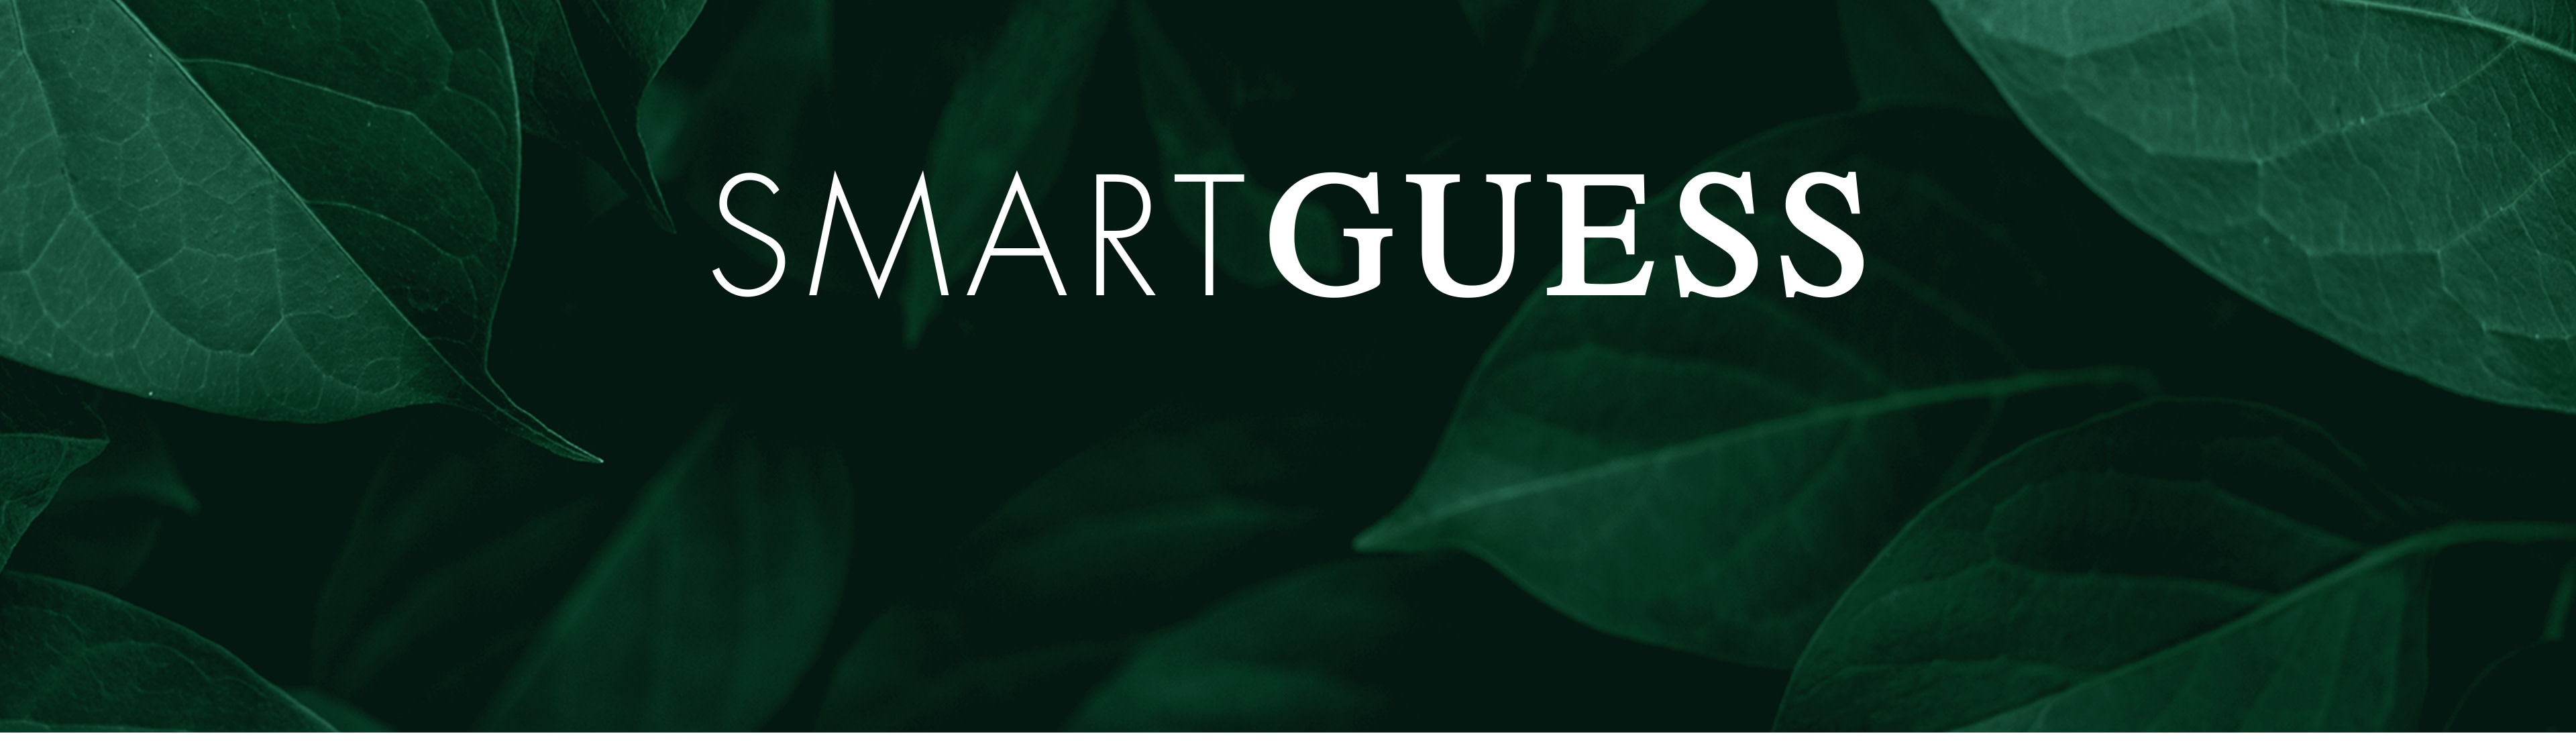 Smart GUESS eco collection